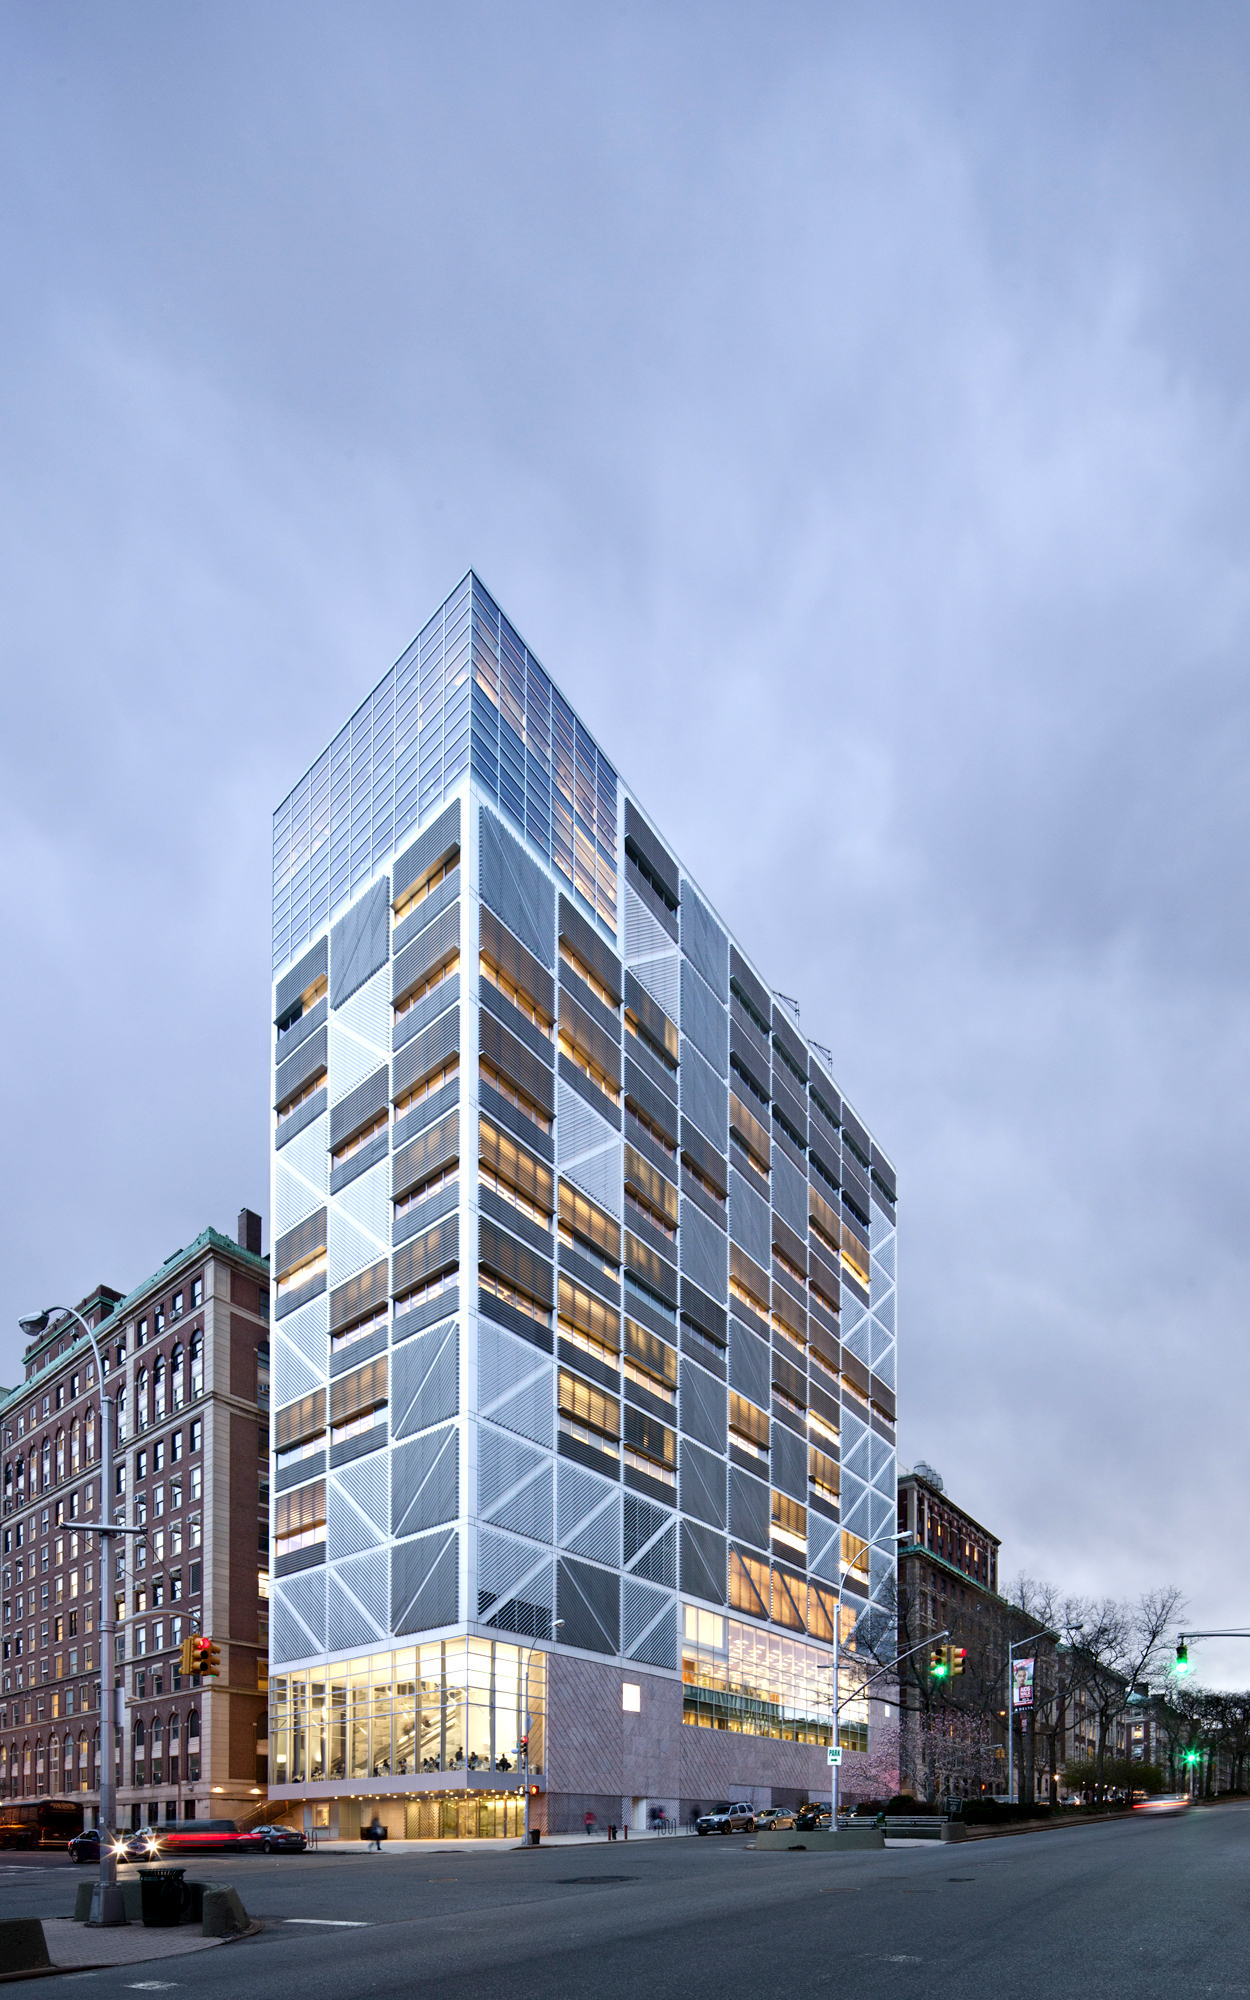 Northwest Corner Building della Columbia University di New York